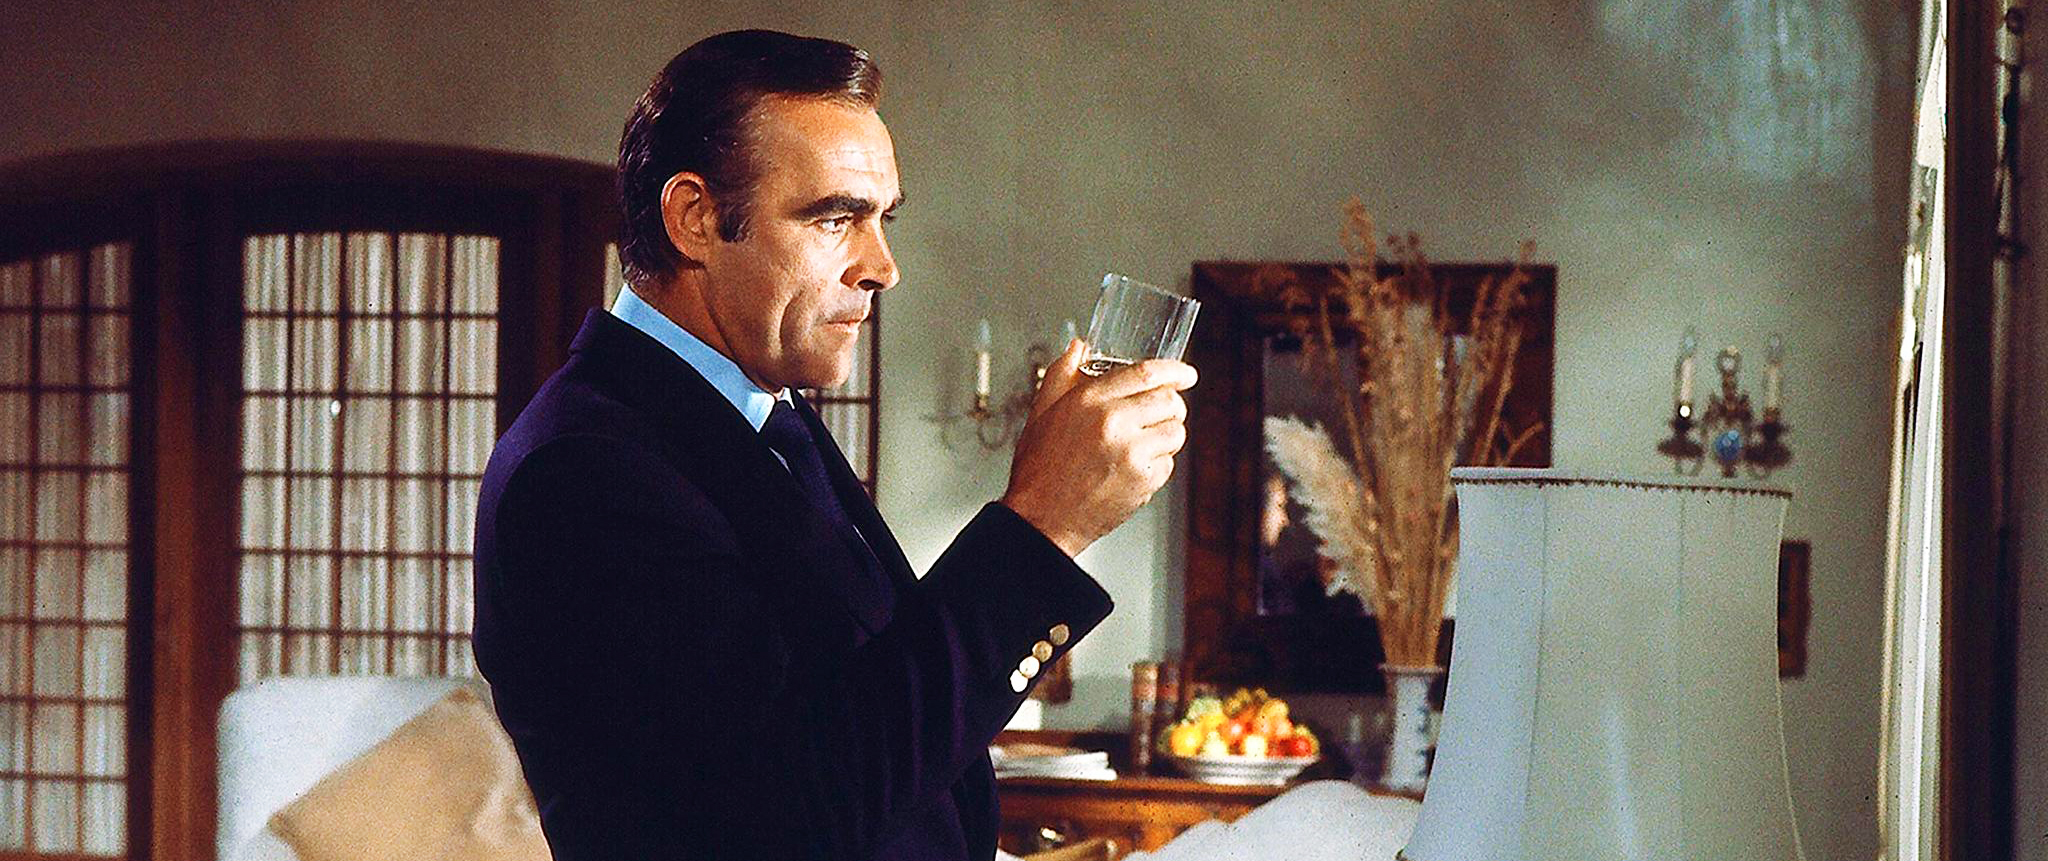 Here's every whisky James Bond ever drank | Gentleman's Journal